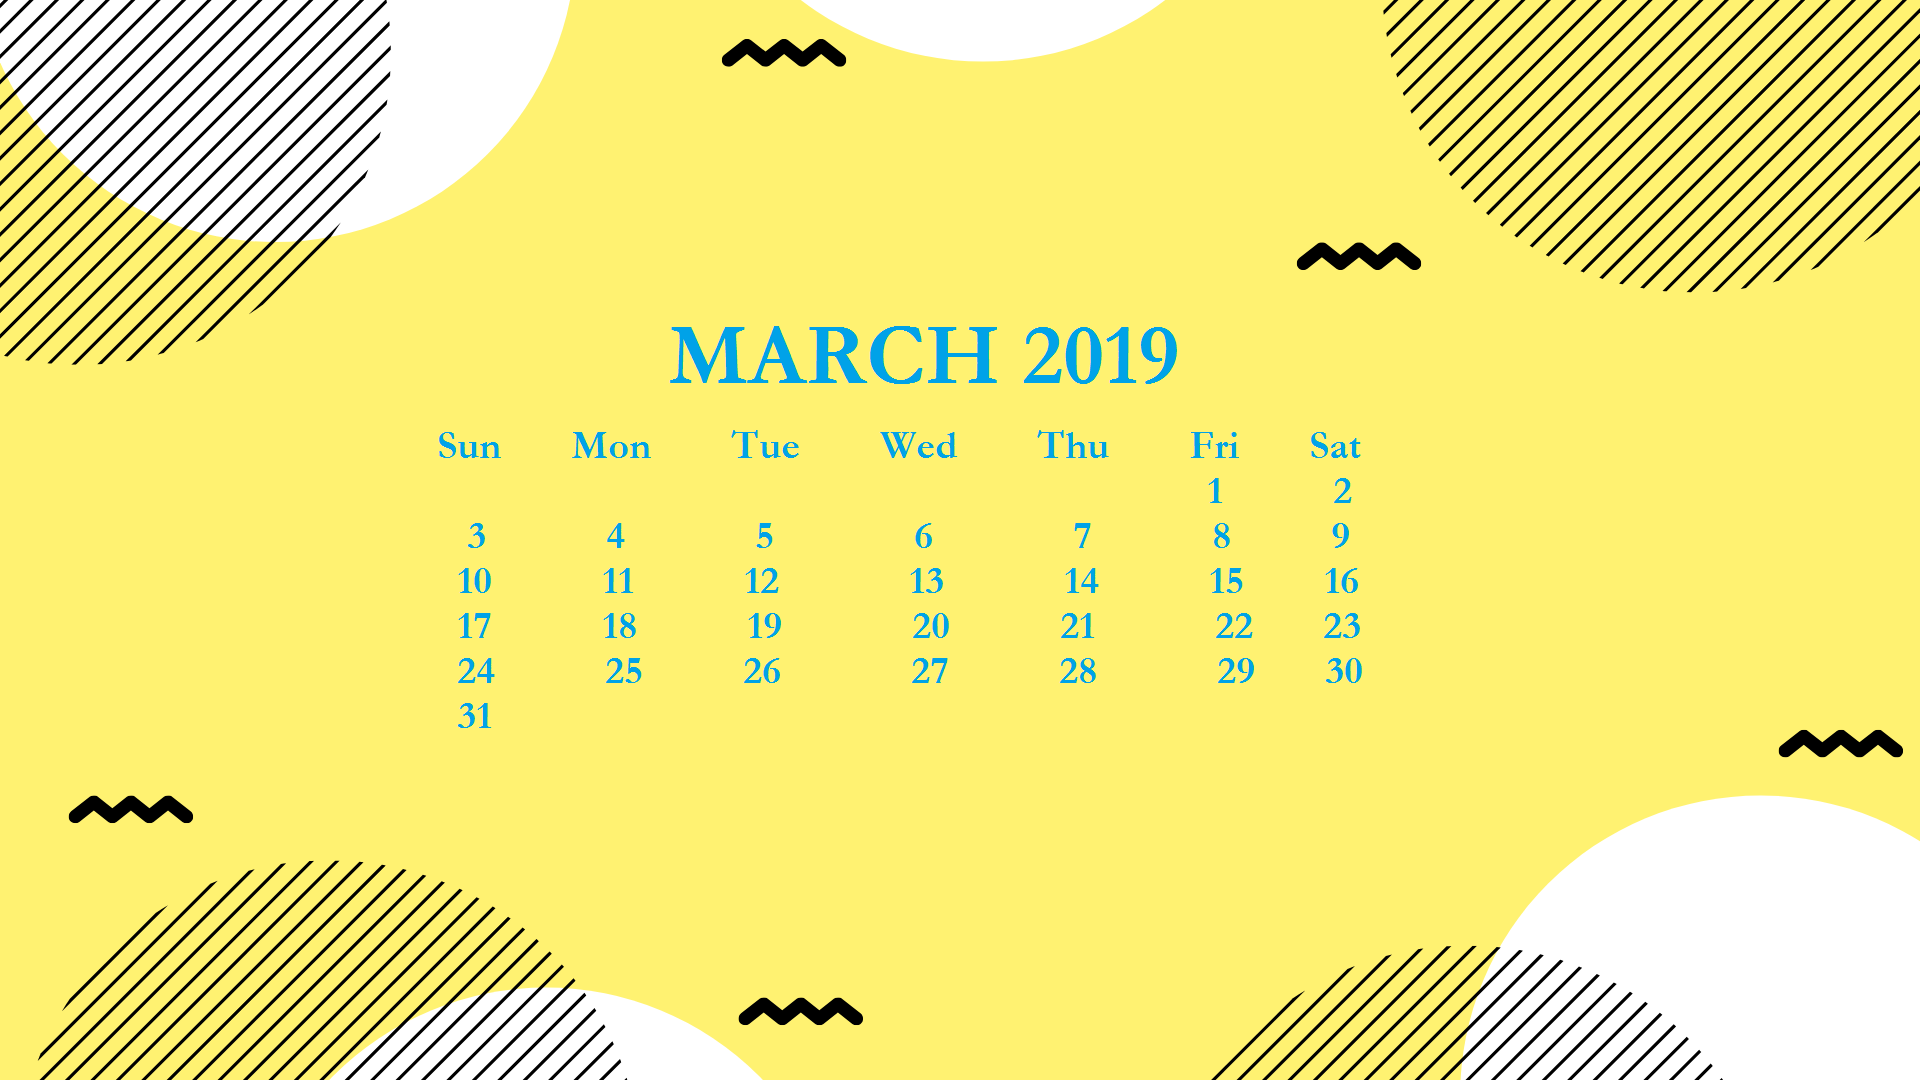 March 2019 HD Calendar Wallpaper